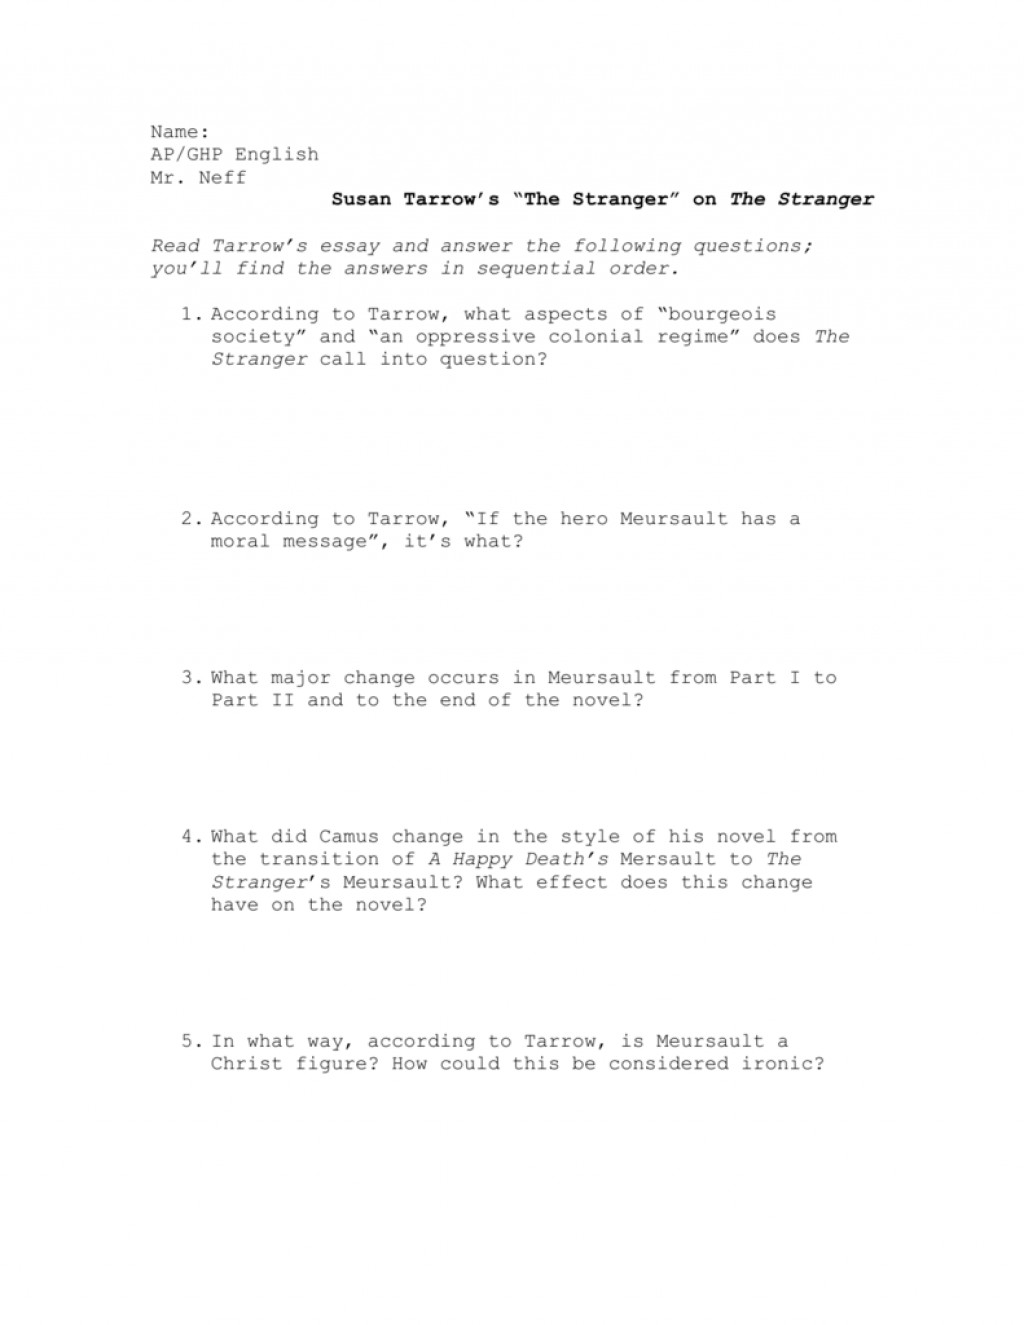 003 008589820 1 Essay Example The Unbelievable Stranger Ideas Prompts Large